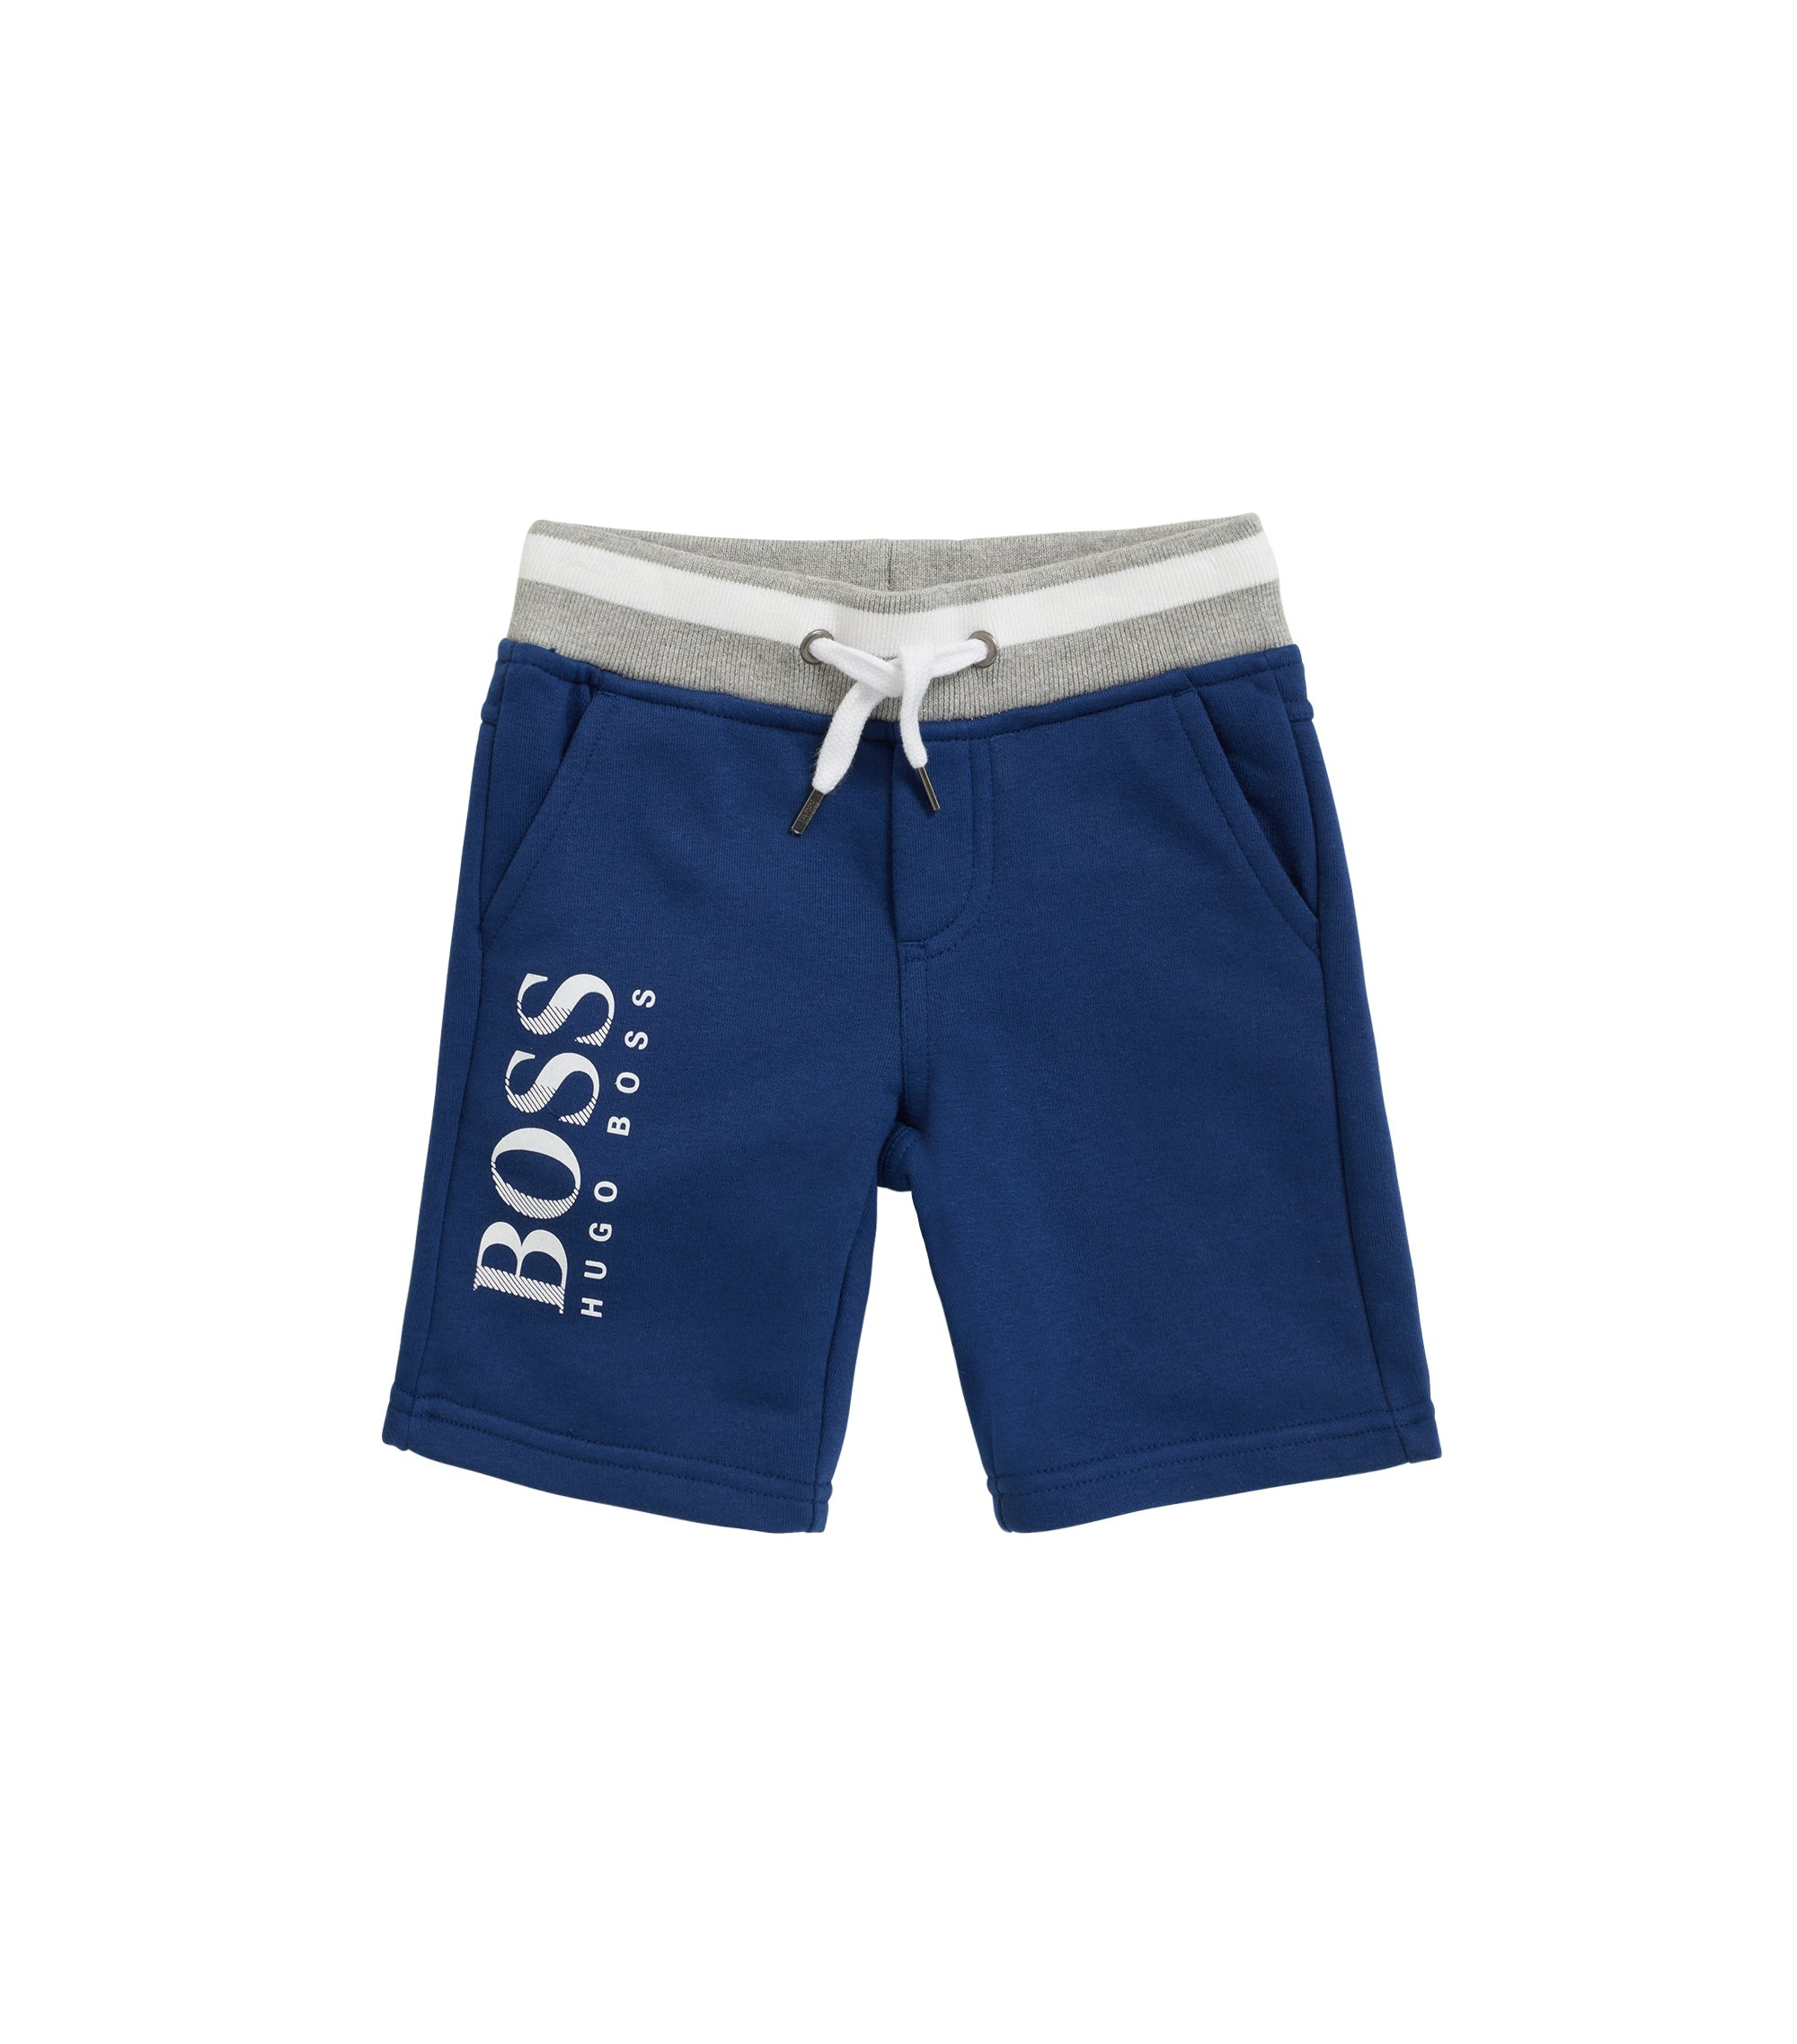 Kids' Bermuda shorts in French terry with logo print, Dark Blue